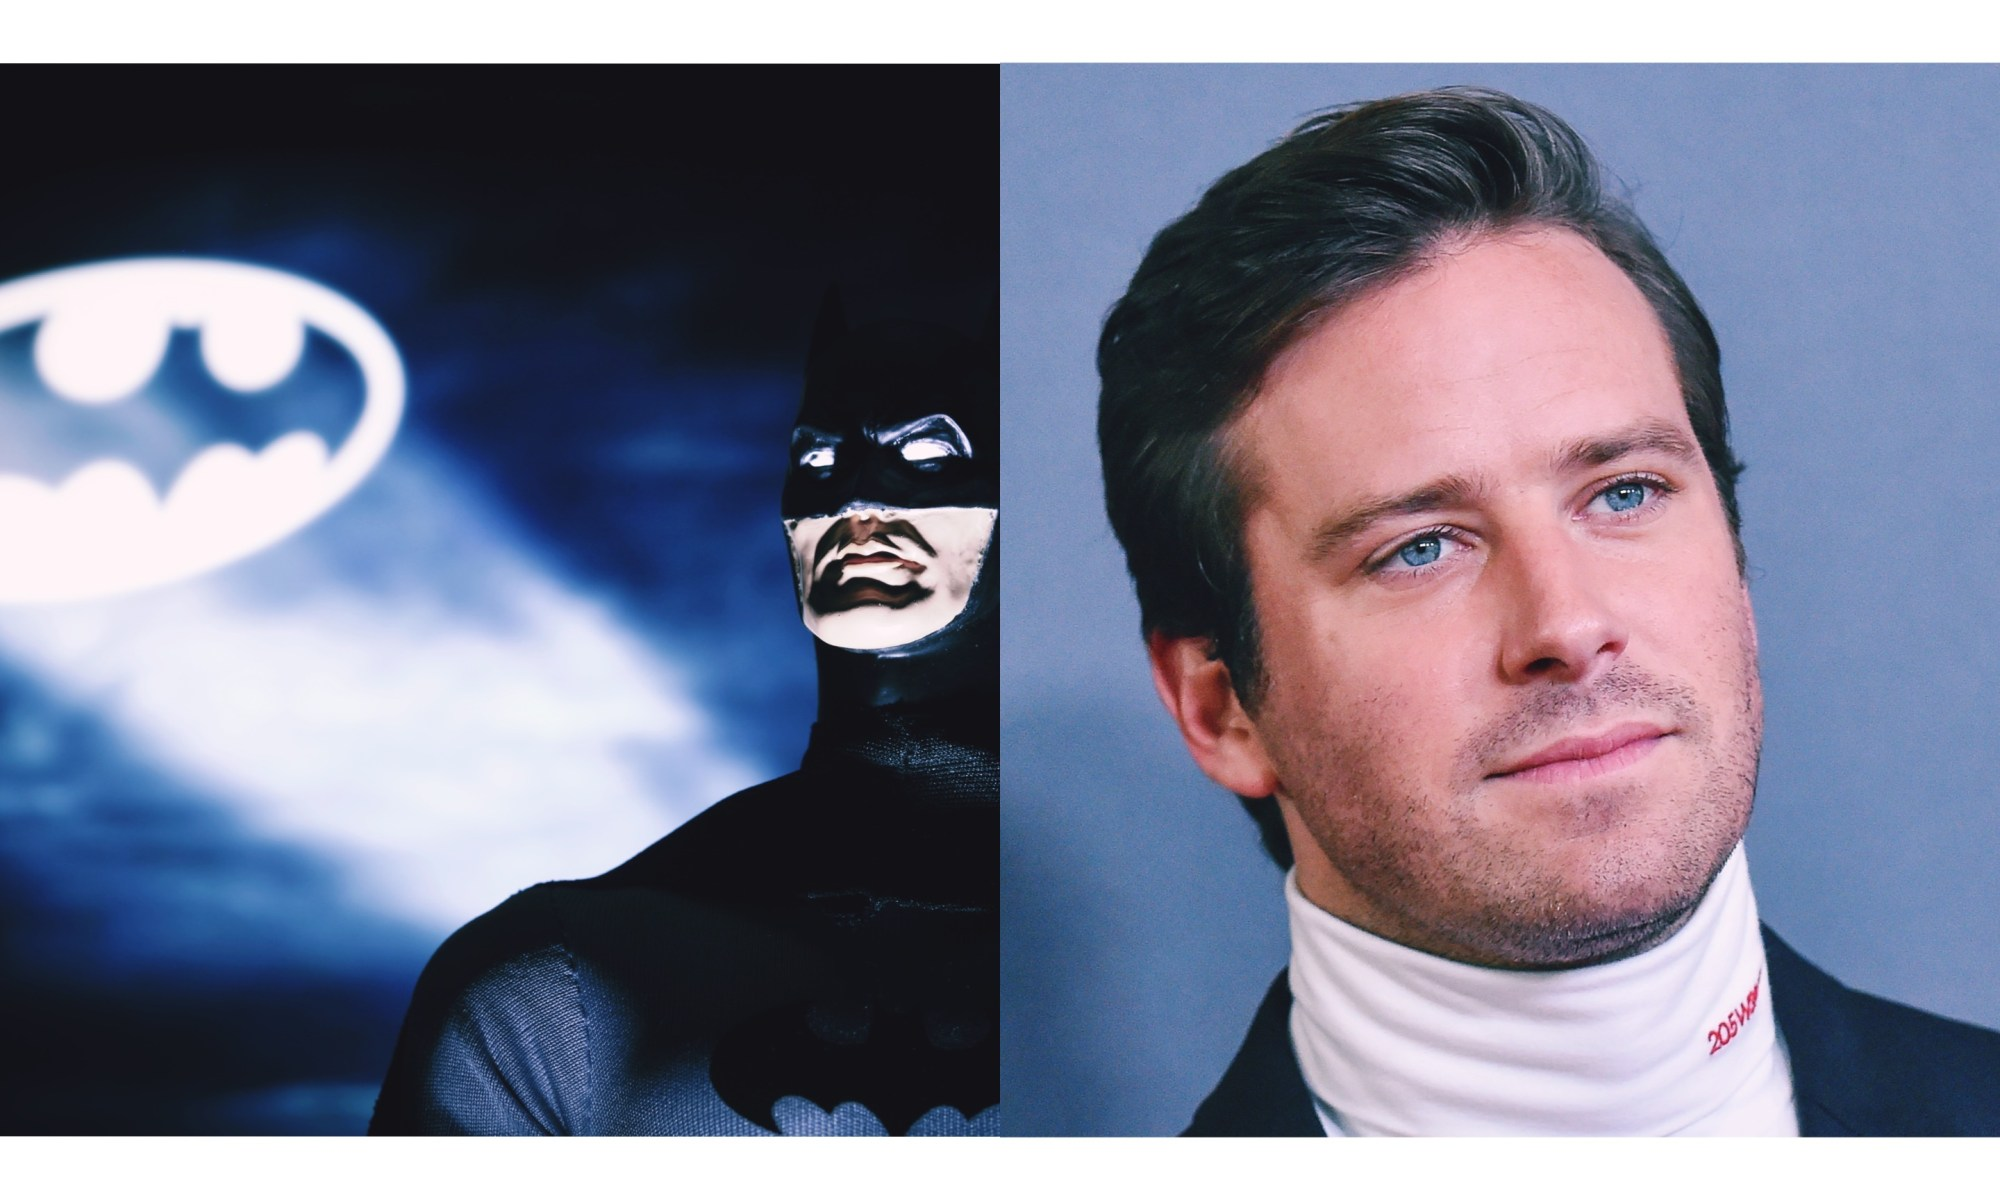 Armie_Hammer_Masque_Batman